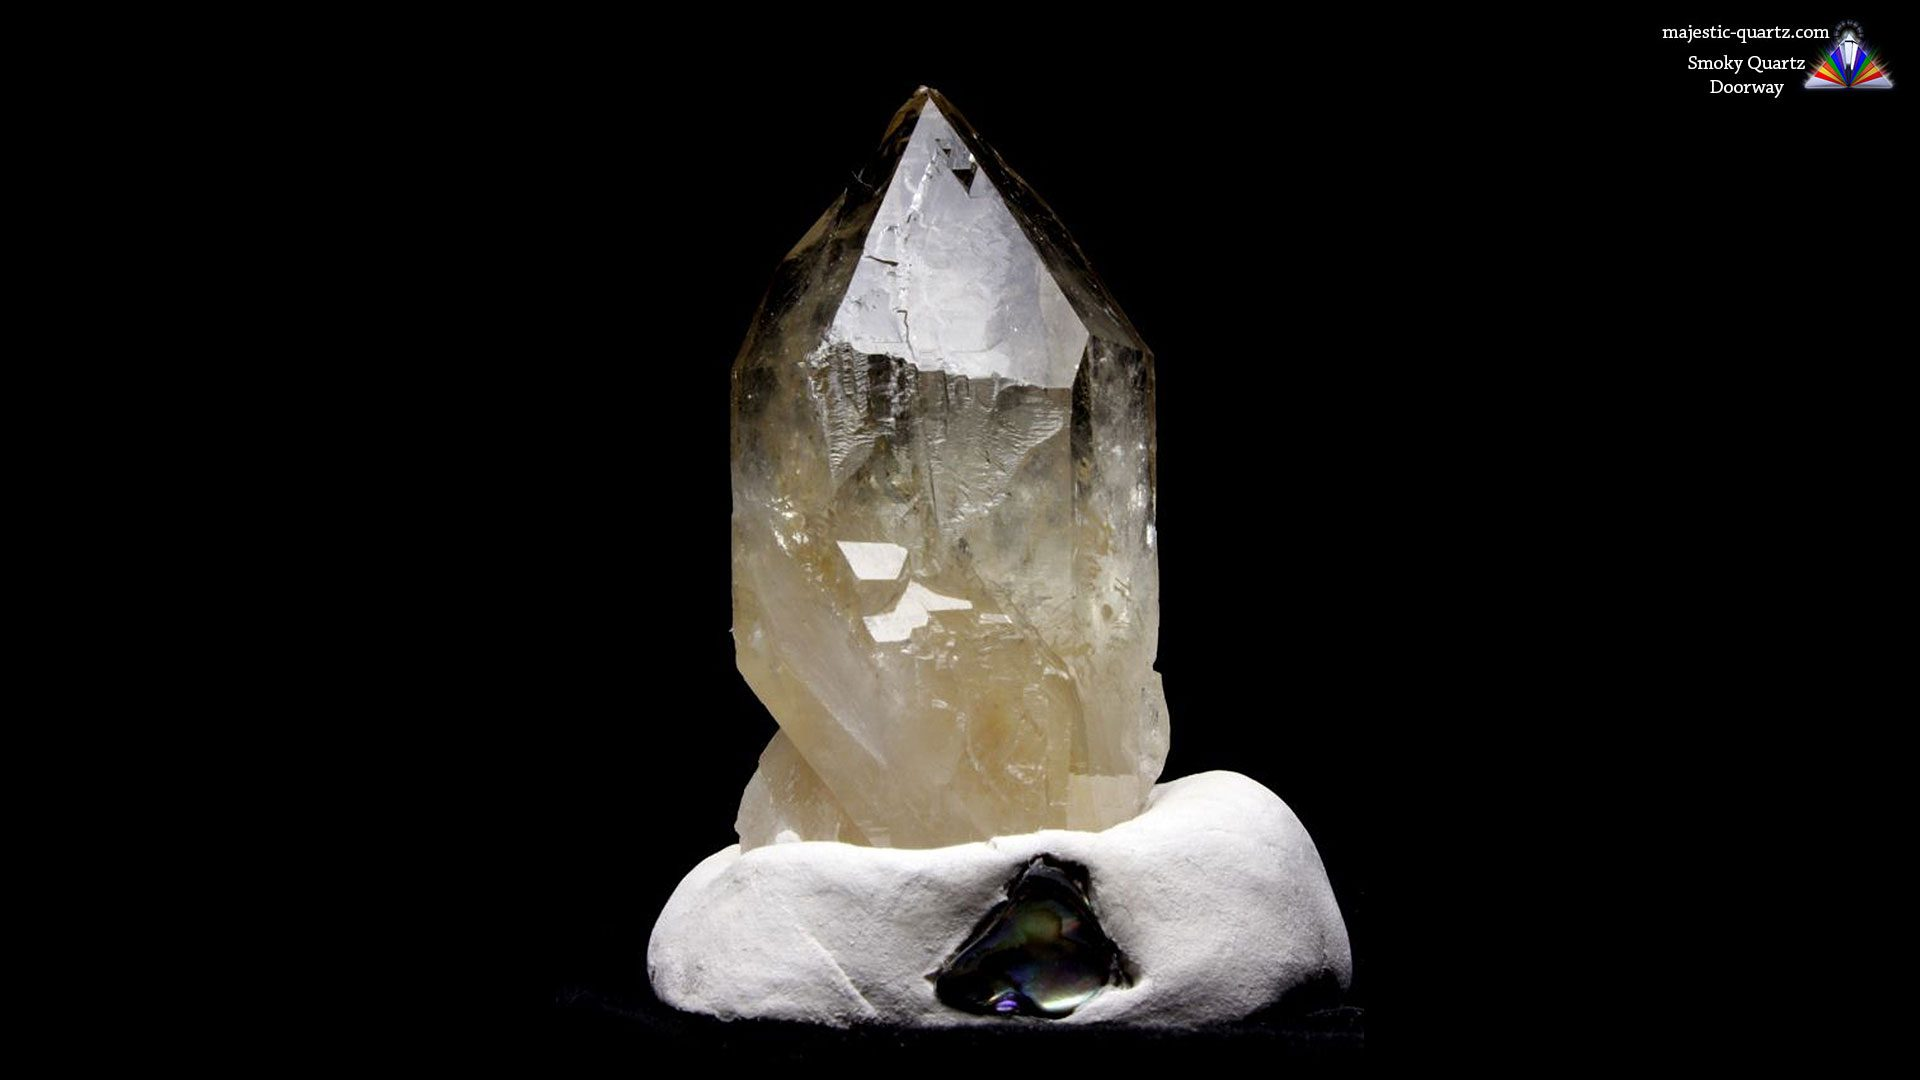 Quartz Doorway Properties and Meaning - Photograph by Anthony Bradford